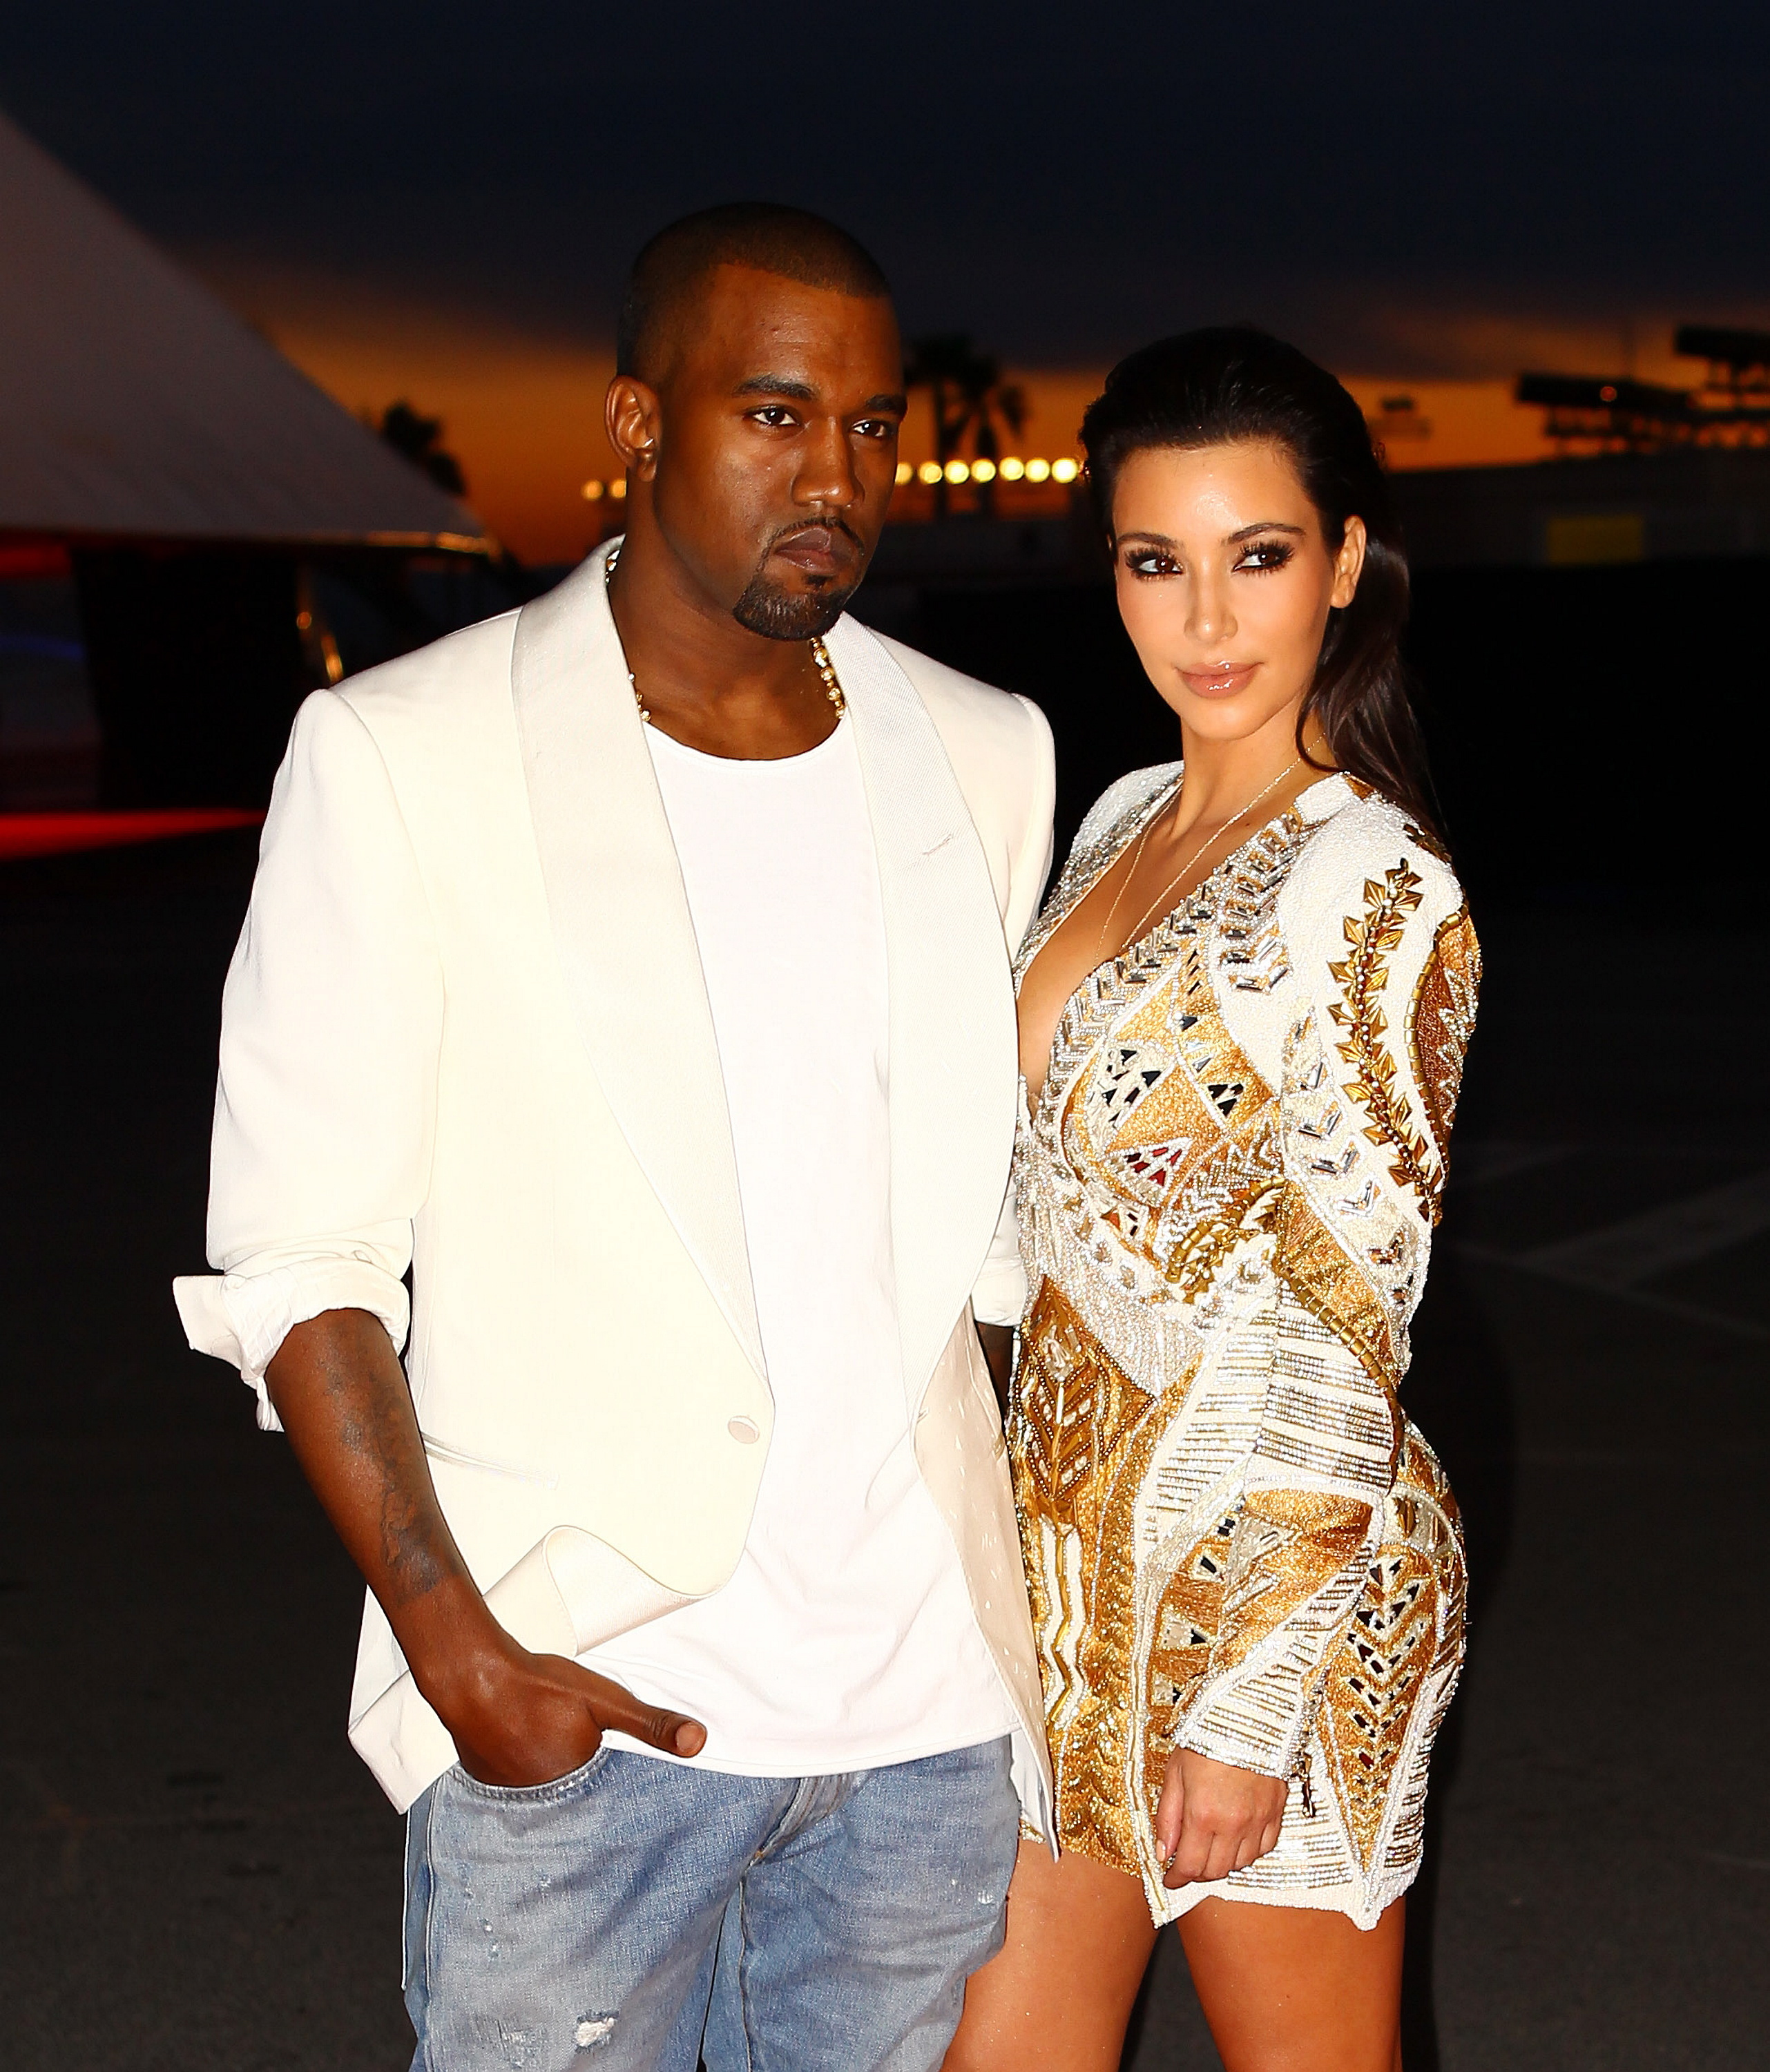 http://cdn.sheknows.com/articles/2012/06/kim-kanye.jpg